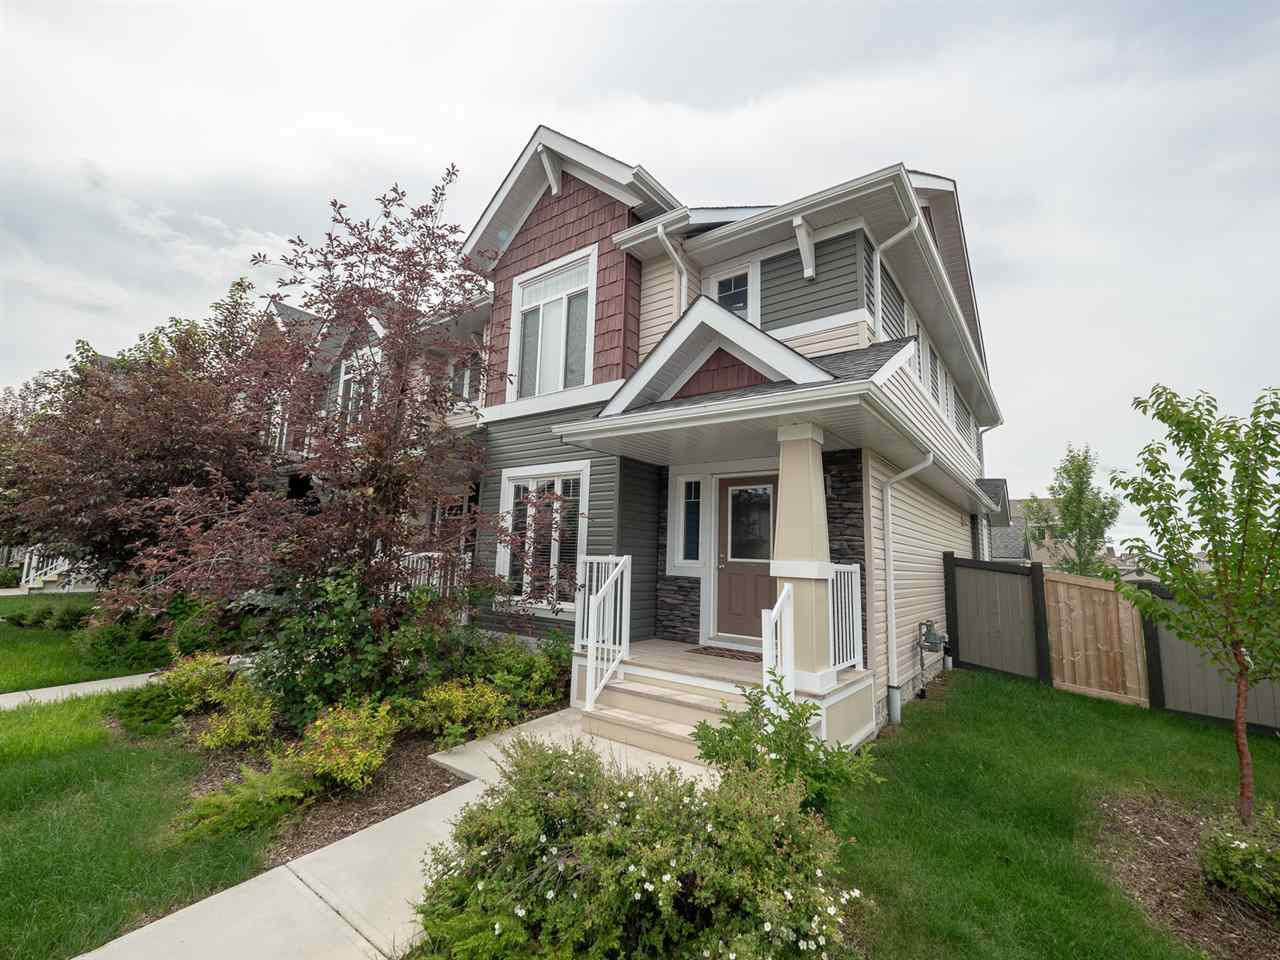 Main Photo: 704 176 Street in Edmonton: Zone 56 Attached Home for sale : MLS®# E4153336